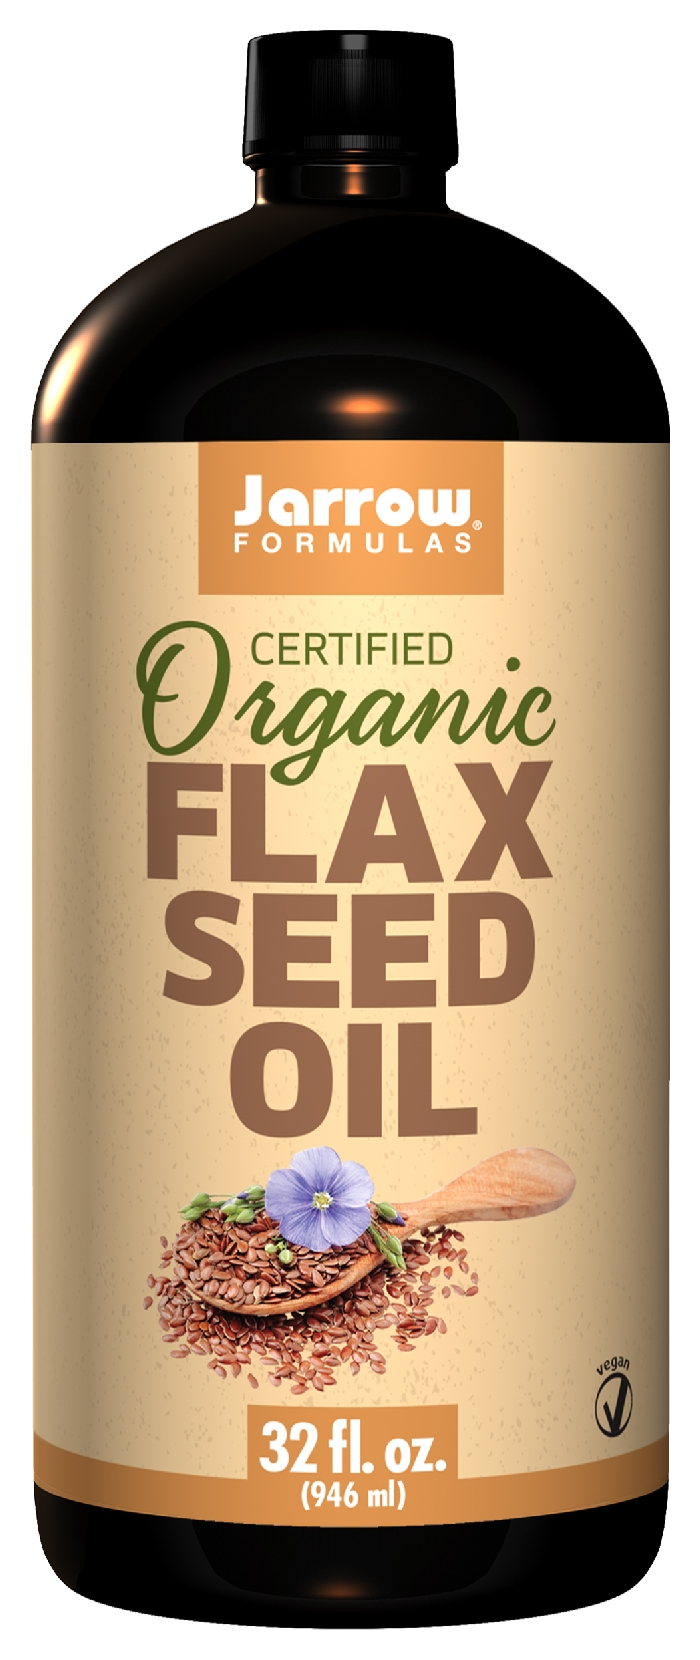 Flax Seed Oil 32 fl oz (946 ml) by Jarrow Formulas